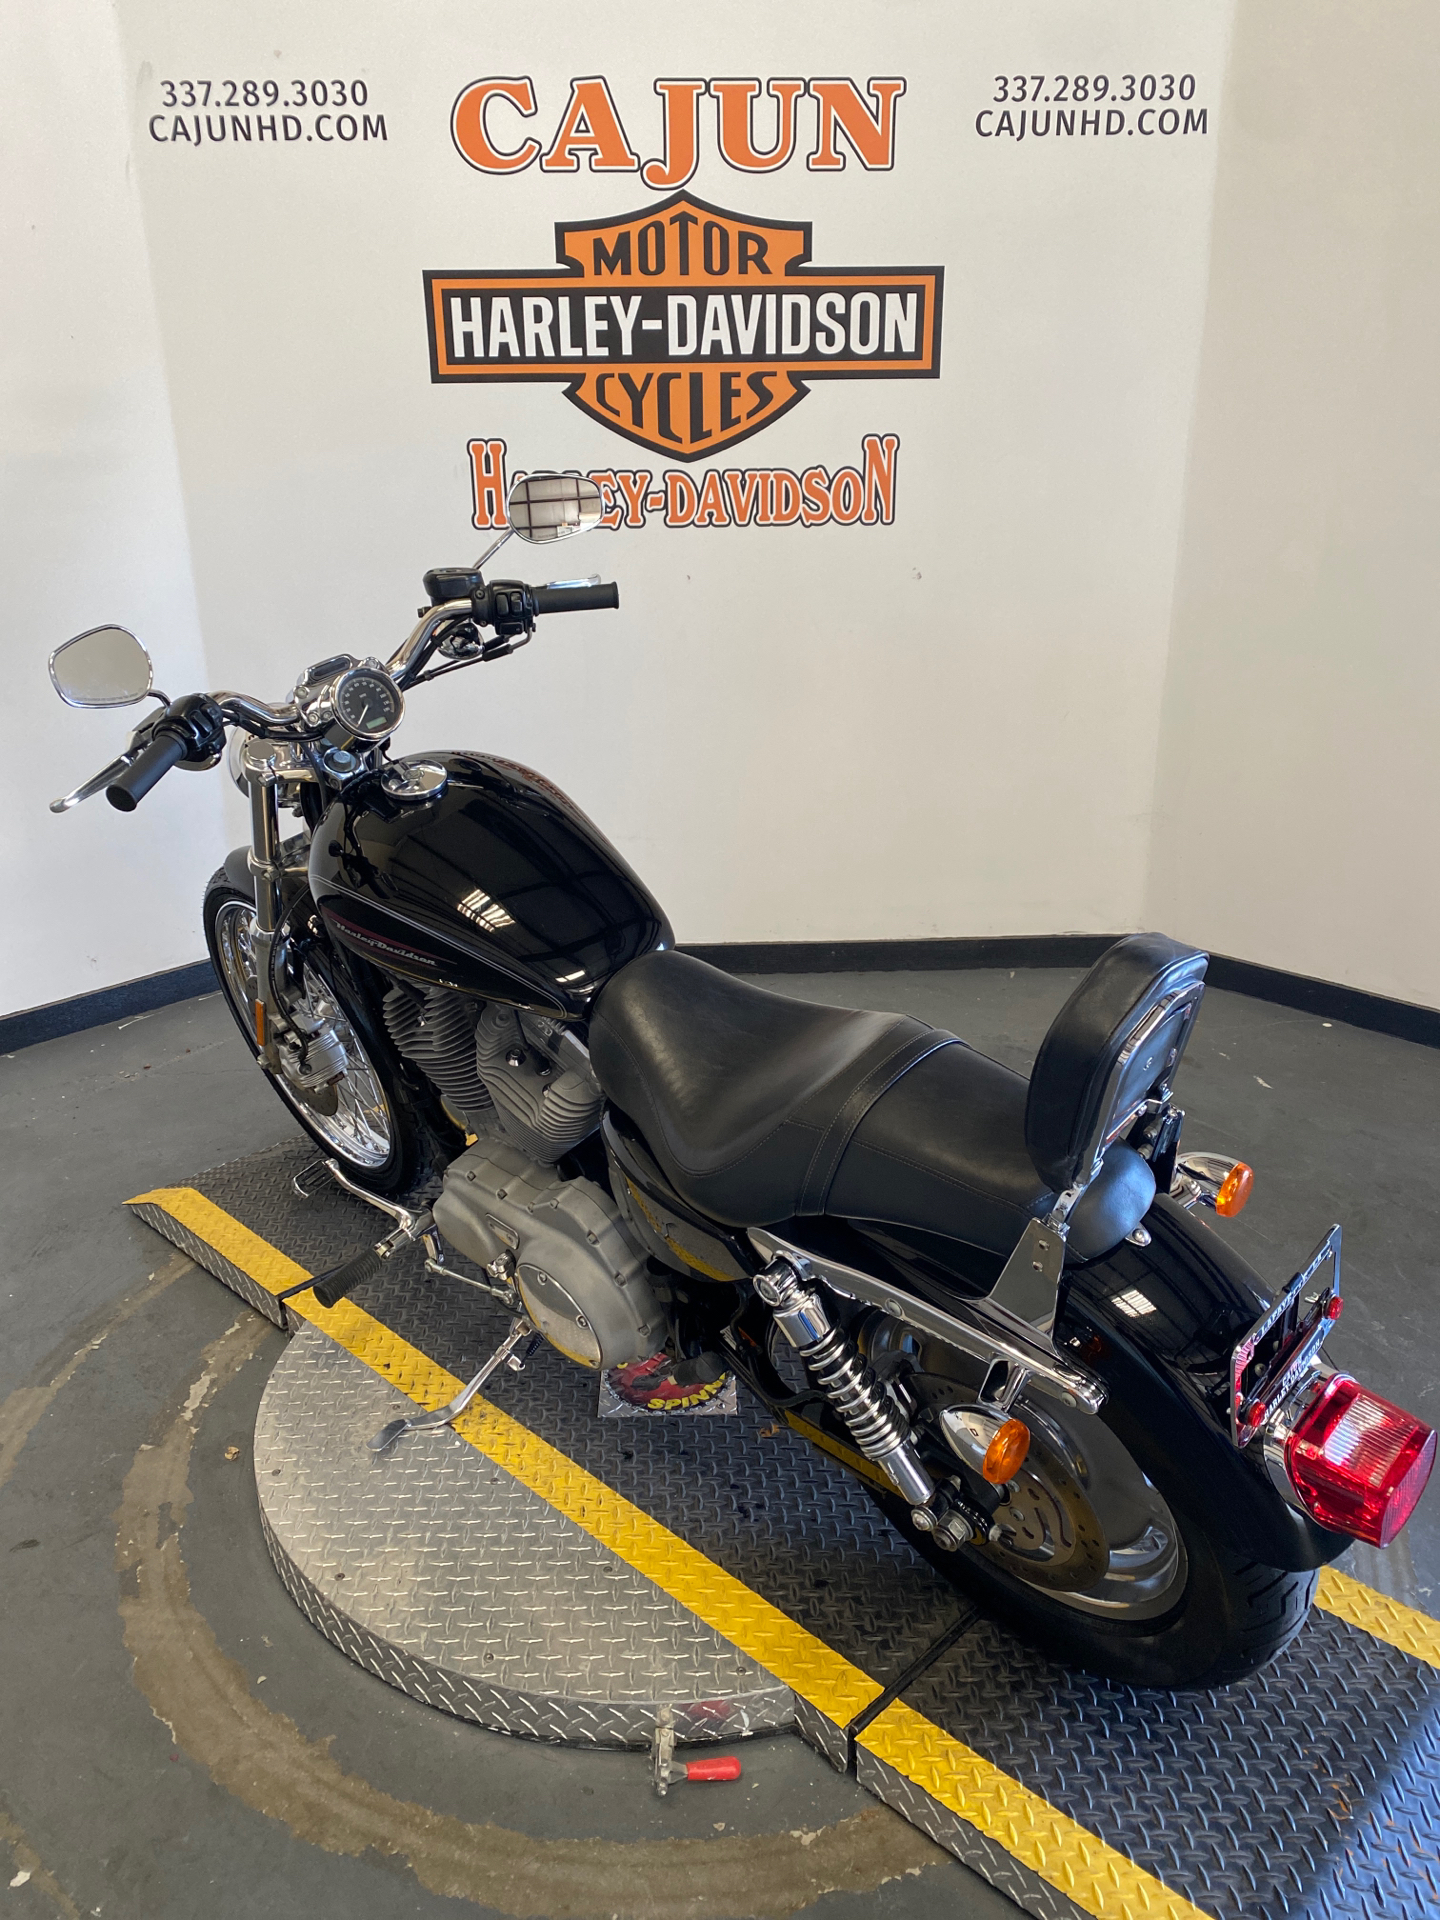 2009 Harley-Davidson Sportster 883 Custom in Scott, Louisiana - Photo 3